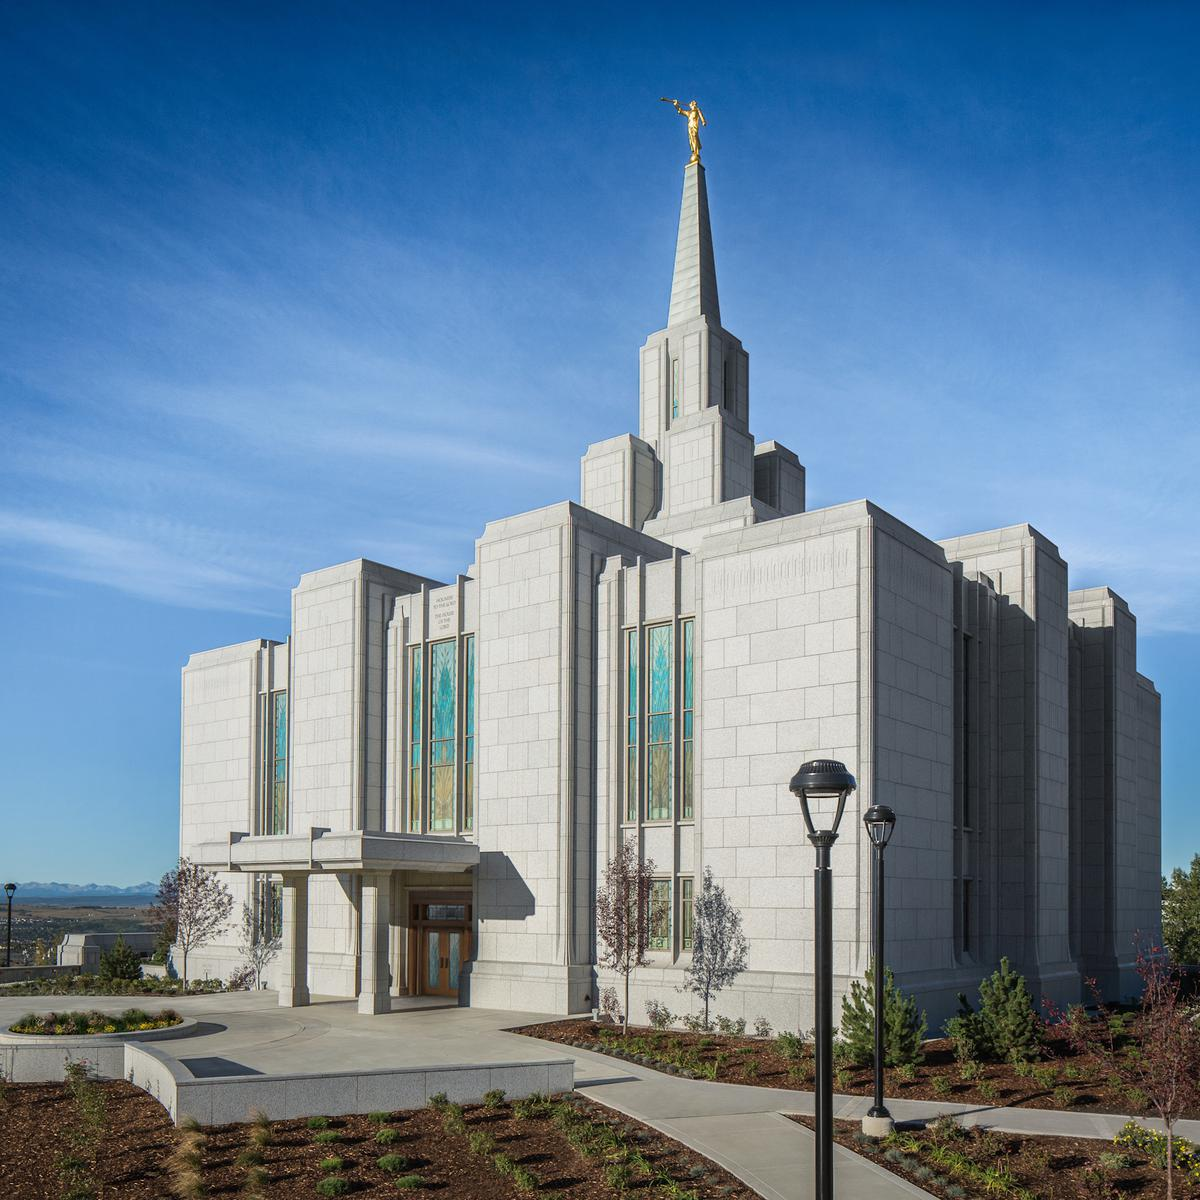 Image of the Calgary Mormon Temple